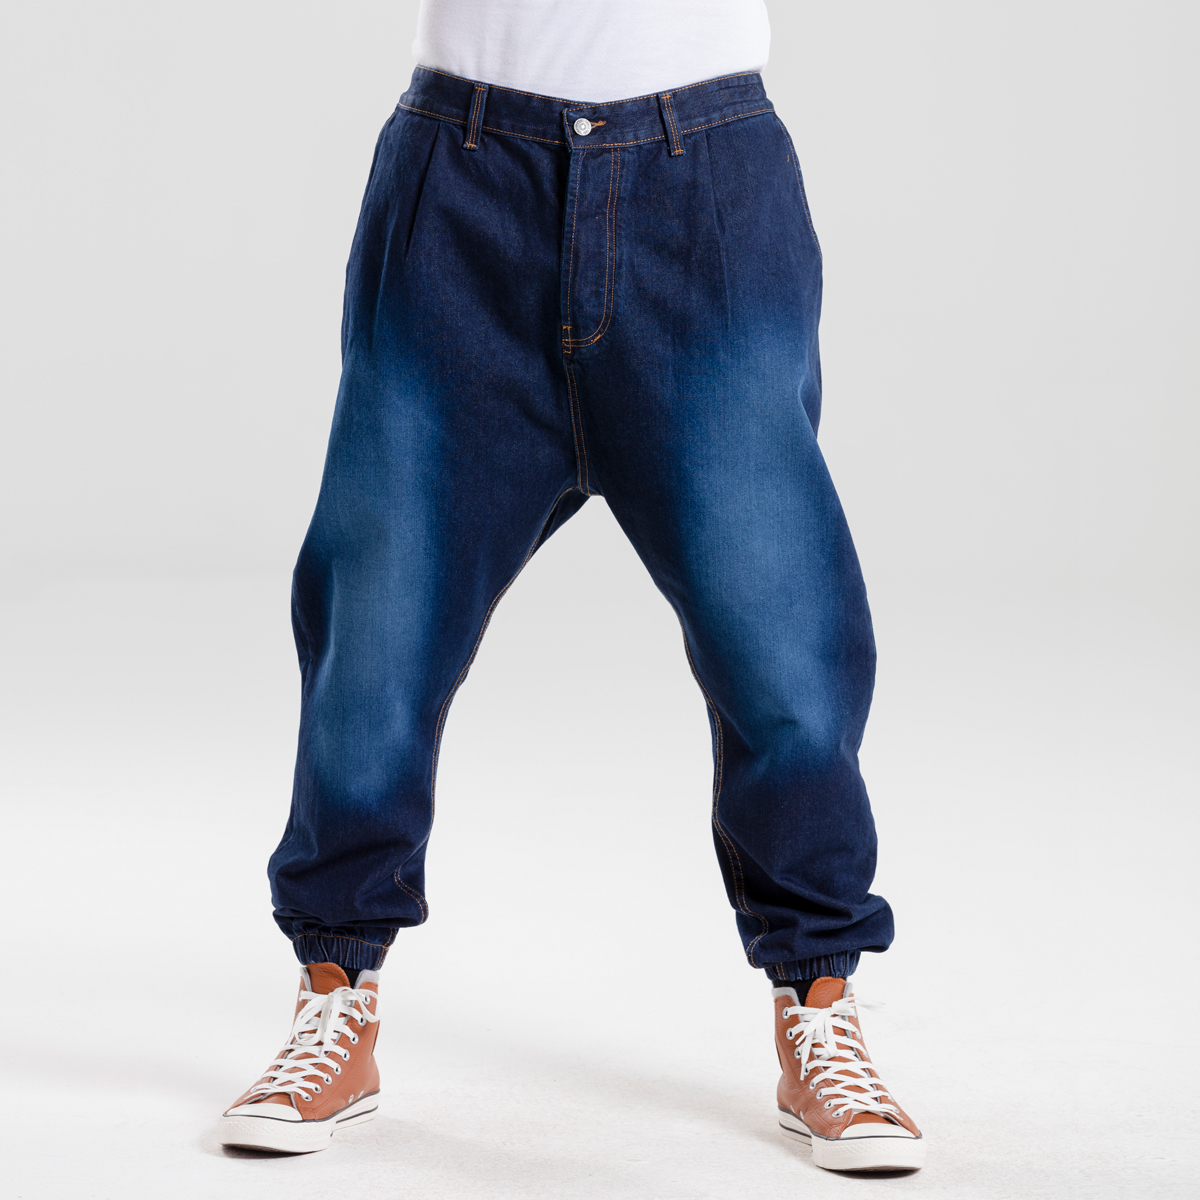 saroual jeans usual blue dcjeans face